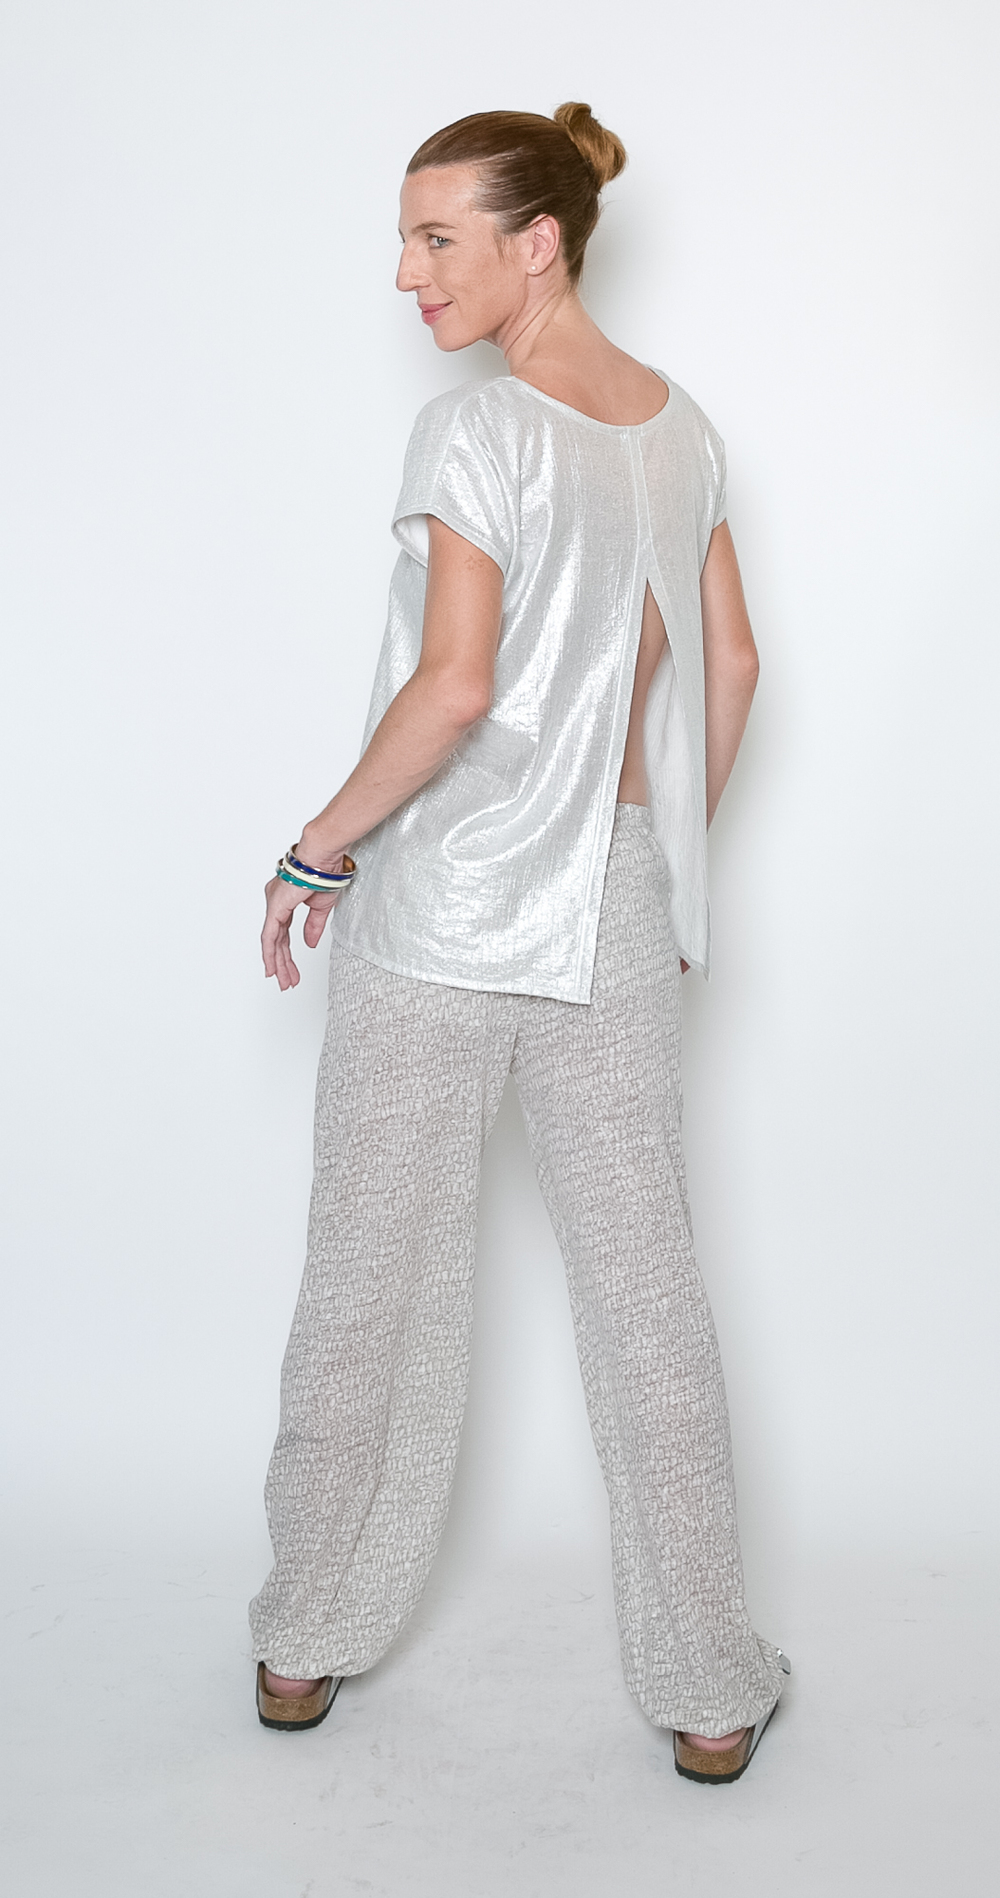 "Sparkle Contemplative Top  #P44P6-26 Sparkle Contemplative Top   $49 #P44P6-32 Sparkle Contemplative Top   $49 Back Button Top, 26"" or 32"" length Silver Sparkle (Rayon/Poly) (Also in Organic Cotton Bamboo solids: Aqua, Black, Navy, Sand, White and Prints) Size XS - XL Gentle Wash Cold, Dry Flat Designed & Sewn in USA   Om Pant      T5583  Organic Cotton Rayon Bamboo     $49 N5583 100% Linen Knit                                   $64 Draped Jogger Pant Self Fabric Cuff   32"" Inseam Sand & Gray Ovals   (Also in solid: Aqua, Black, Navy, Sand, White, Charcoal, Everglade, Fog, Lake, Lipstick, and all Prints)  Size XS - XL Gentle Wash Cold; Hang to Dry   NOTE:  Om Pant was photographed in Aqua Stripes 100% Linen Knit,  production will be 100% Linen Knit AND 55% Organic Cotton/45% Rayon Bamboo Slub from China. The top will still be cut and sewn in USA."